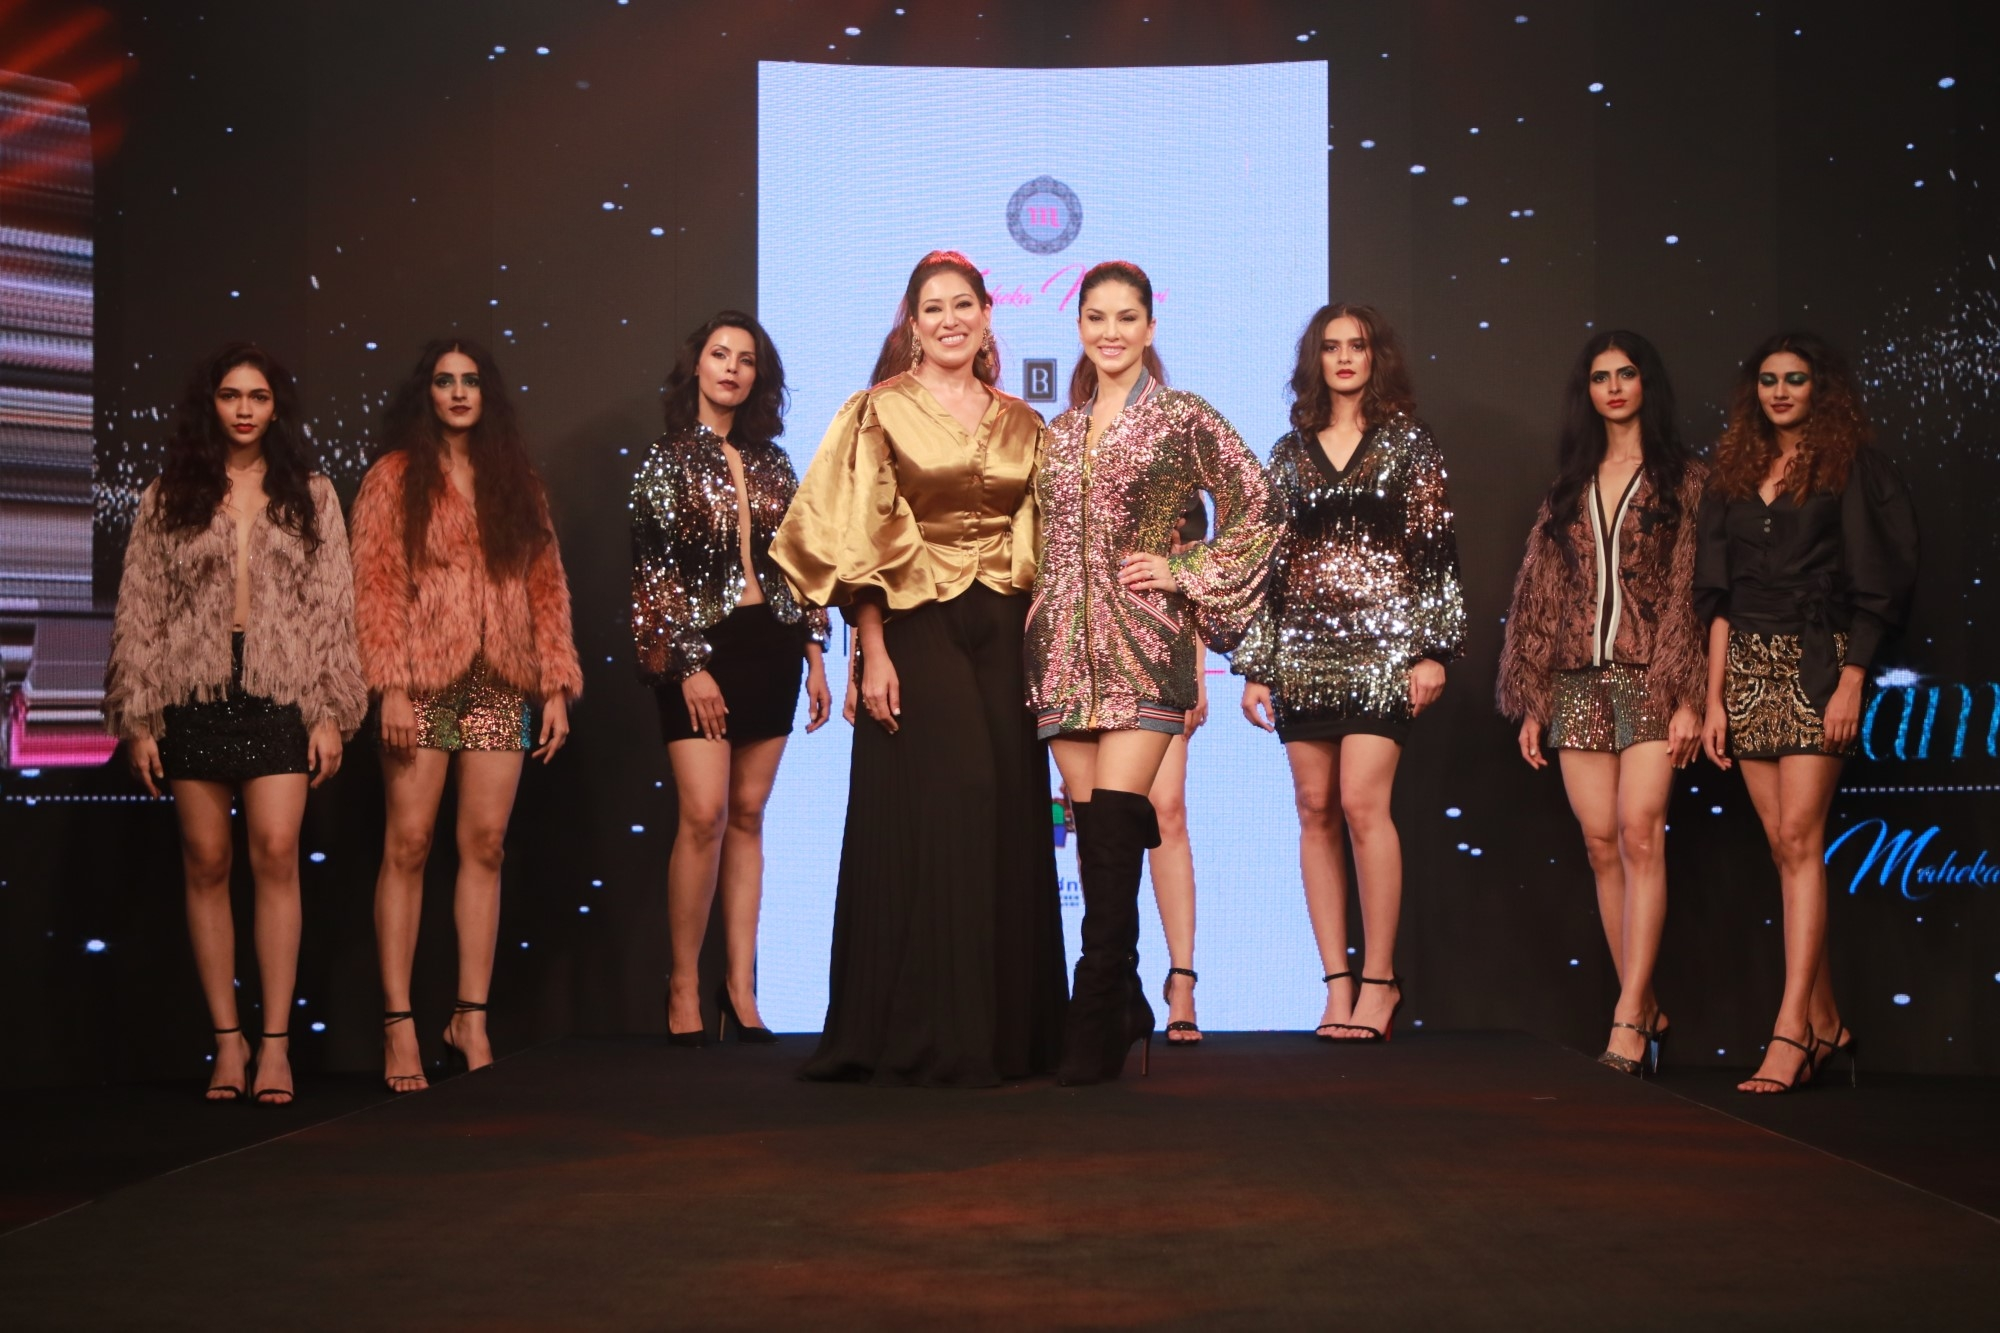 Actress Sunny Leone shares the ramp with fashion designer Maheka Mirpuri during the latter's show on Day 3 of the Bombay Times Fashion Week, in Mumbai